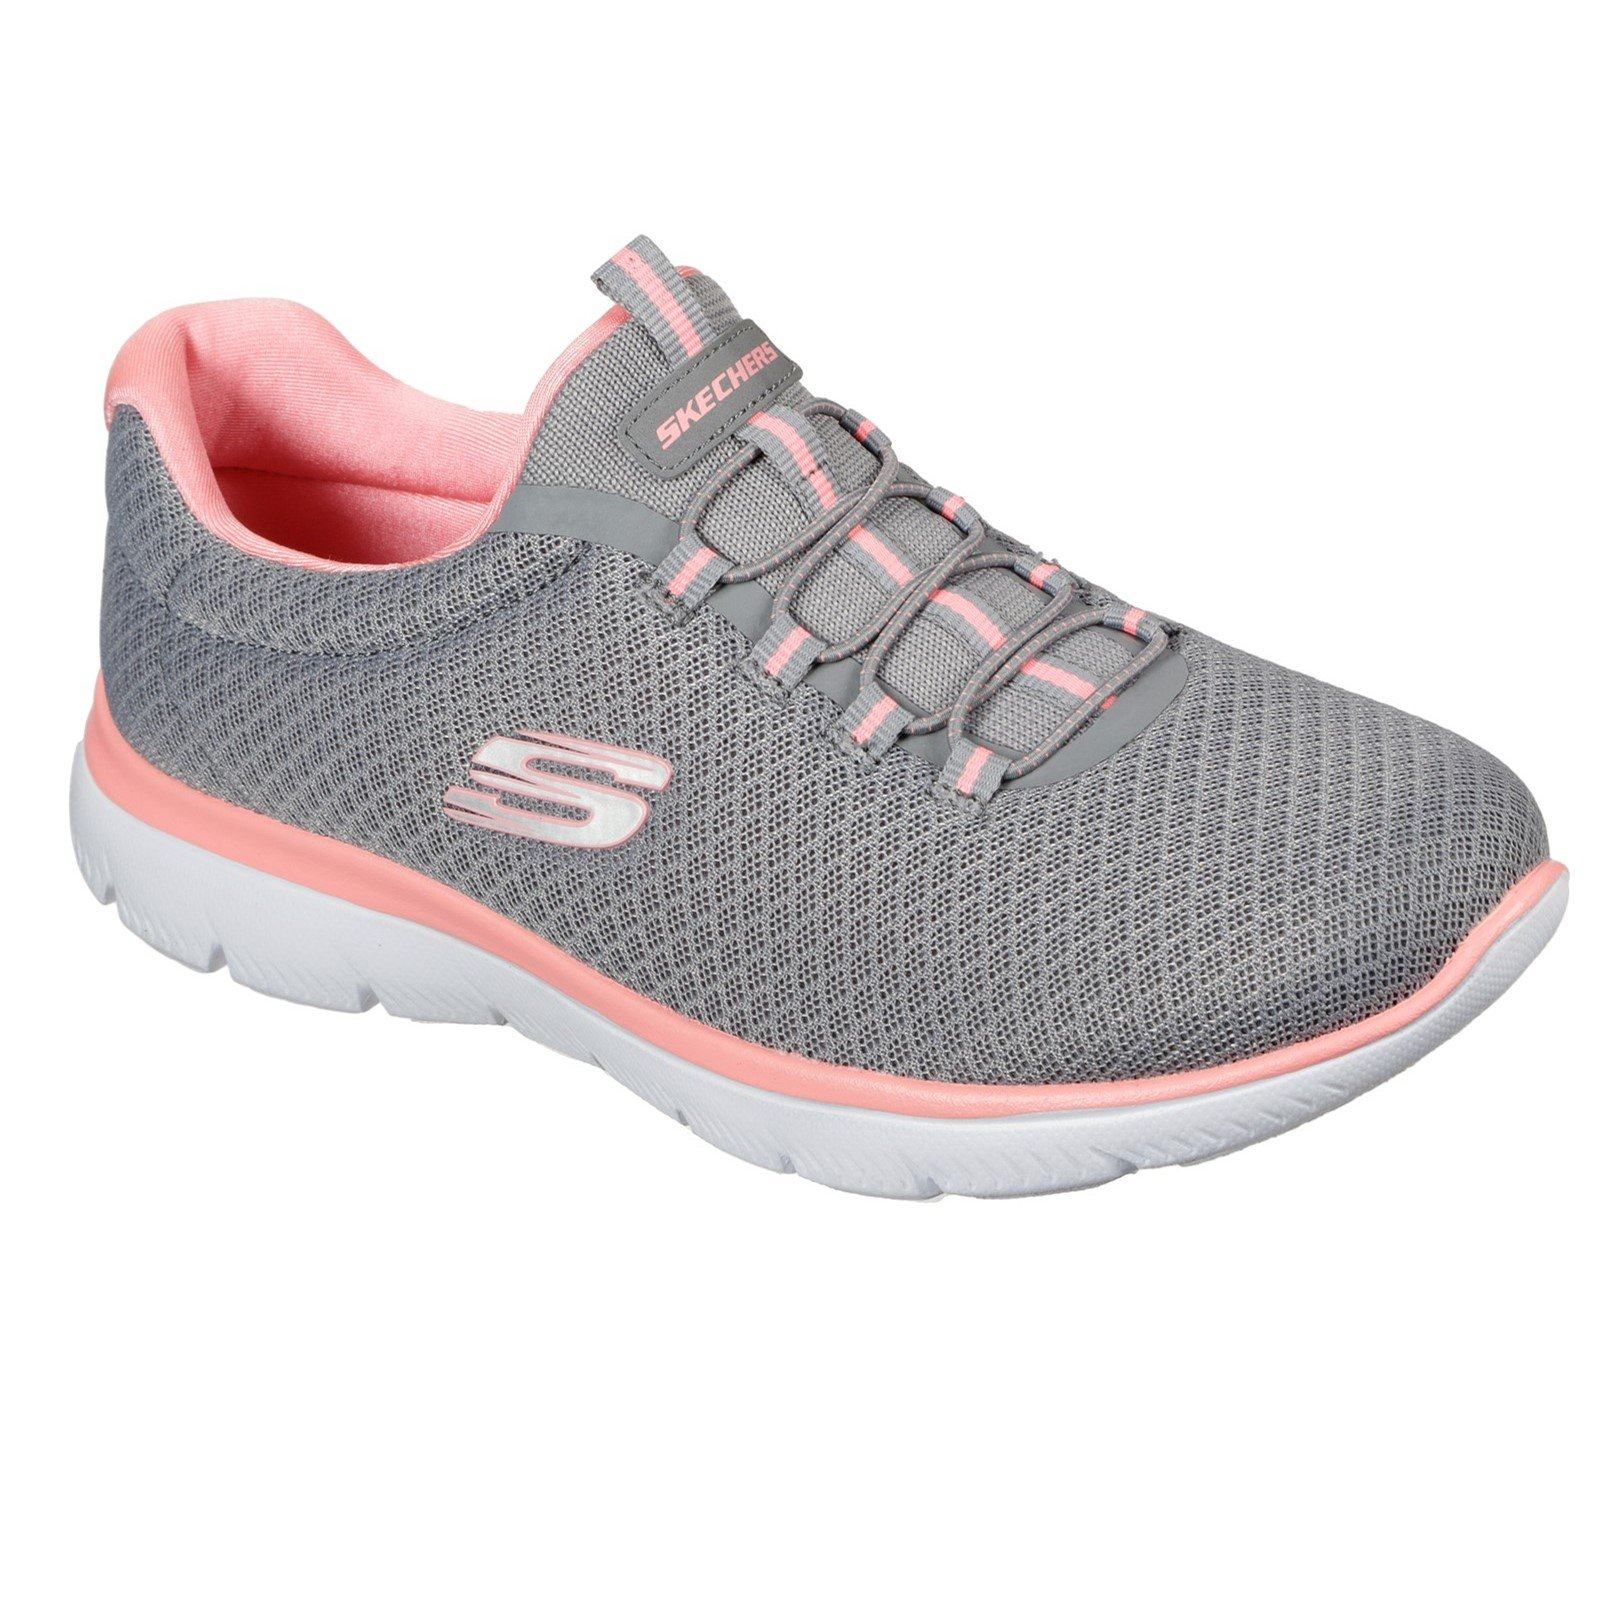 Skechers Women's Summits Slip On Trainer Various Colours 30708 - Grey/Pink 6